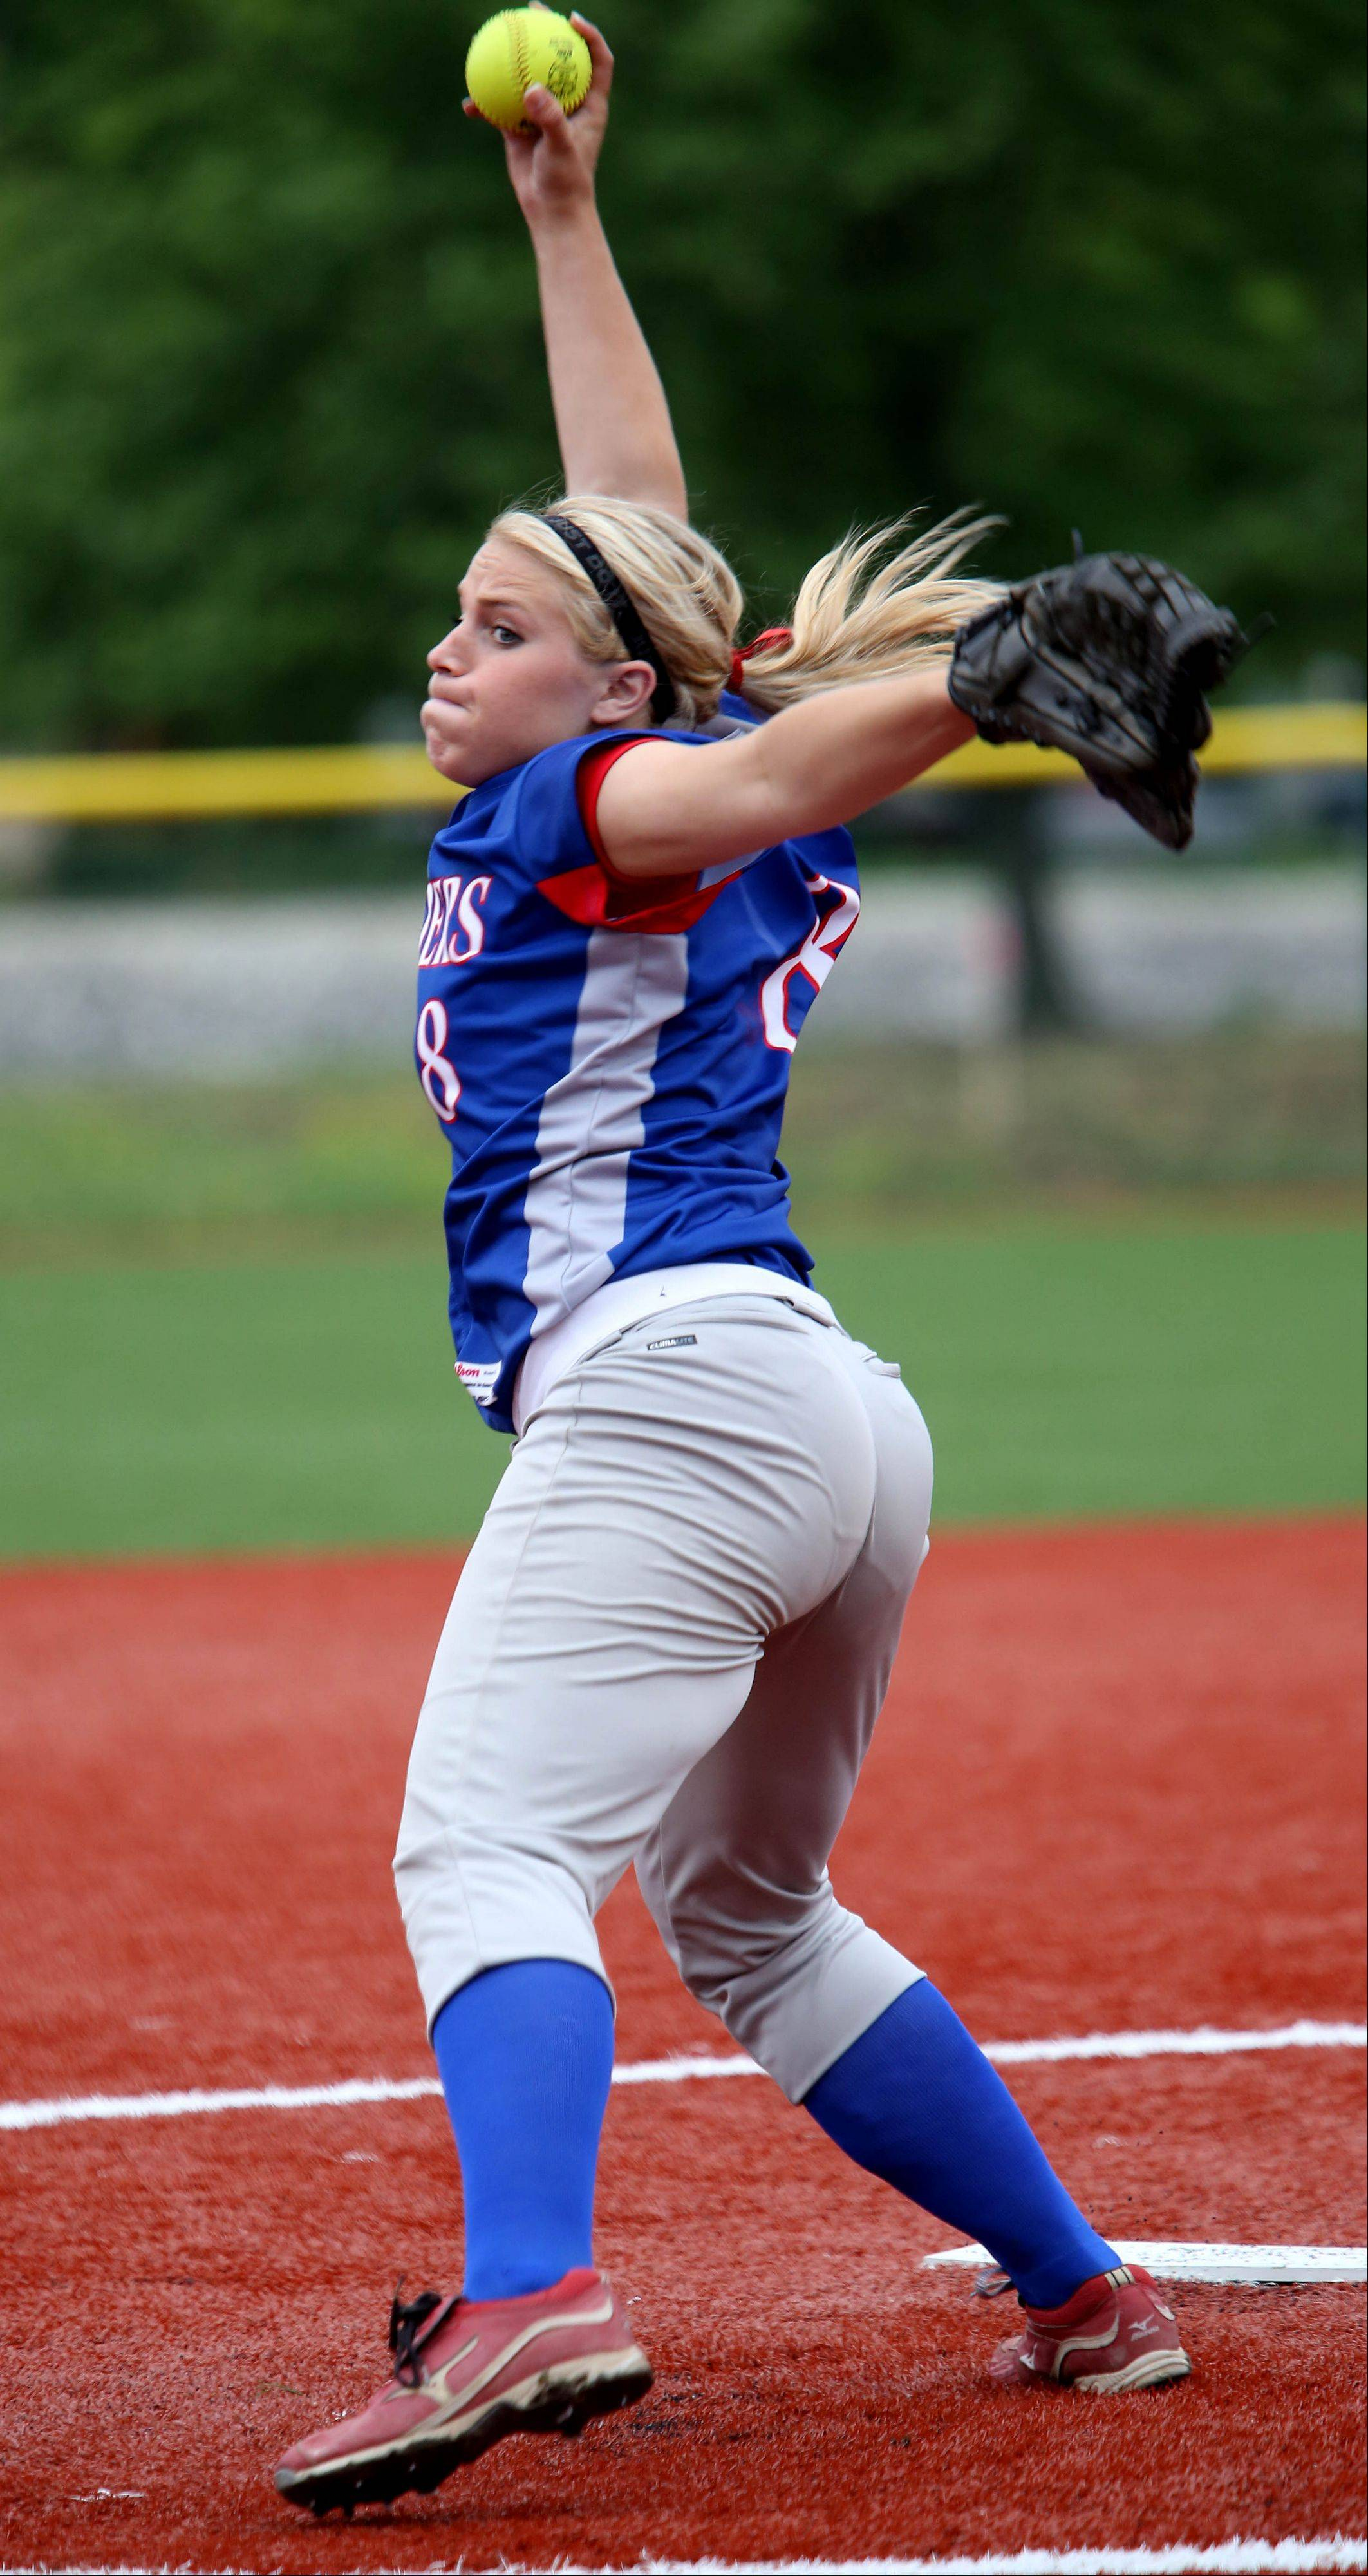 Stephanie Chitkowski of Glenbard South winds up her pitch against Evergreen Park in Class 3A sectional semifinal softball action on Tuesday in La Grange.